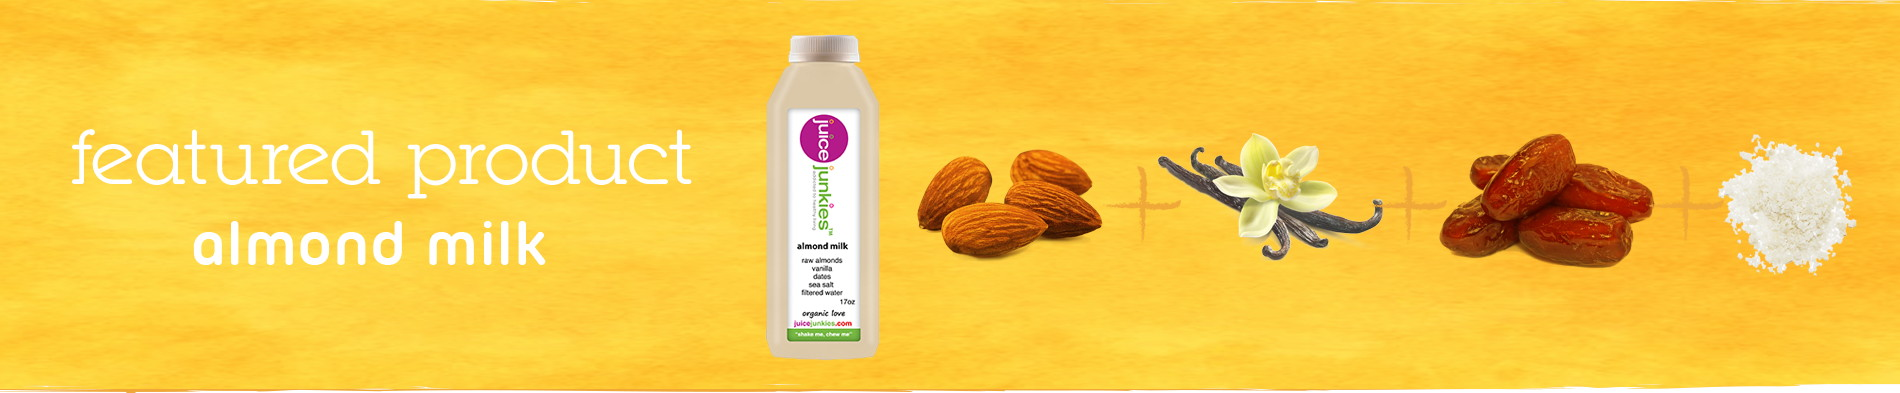 Featured Product - almond milk